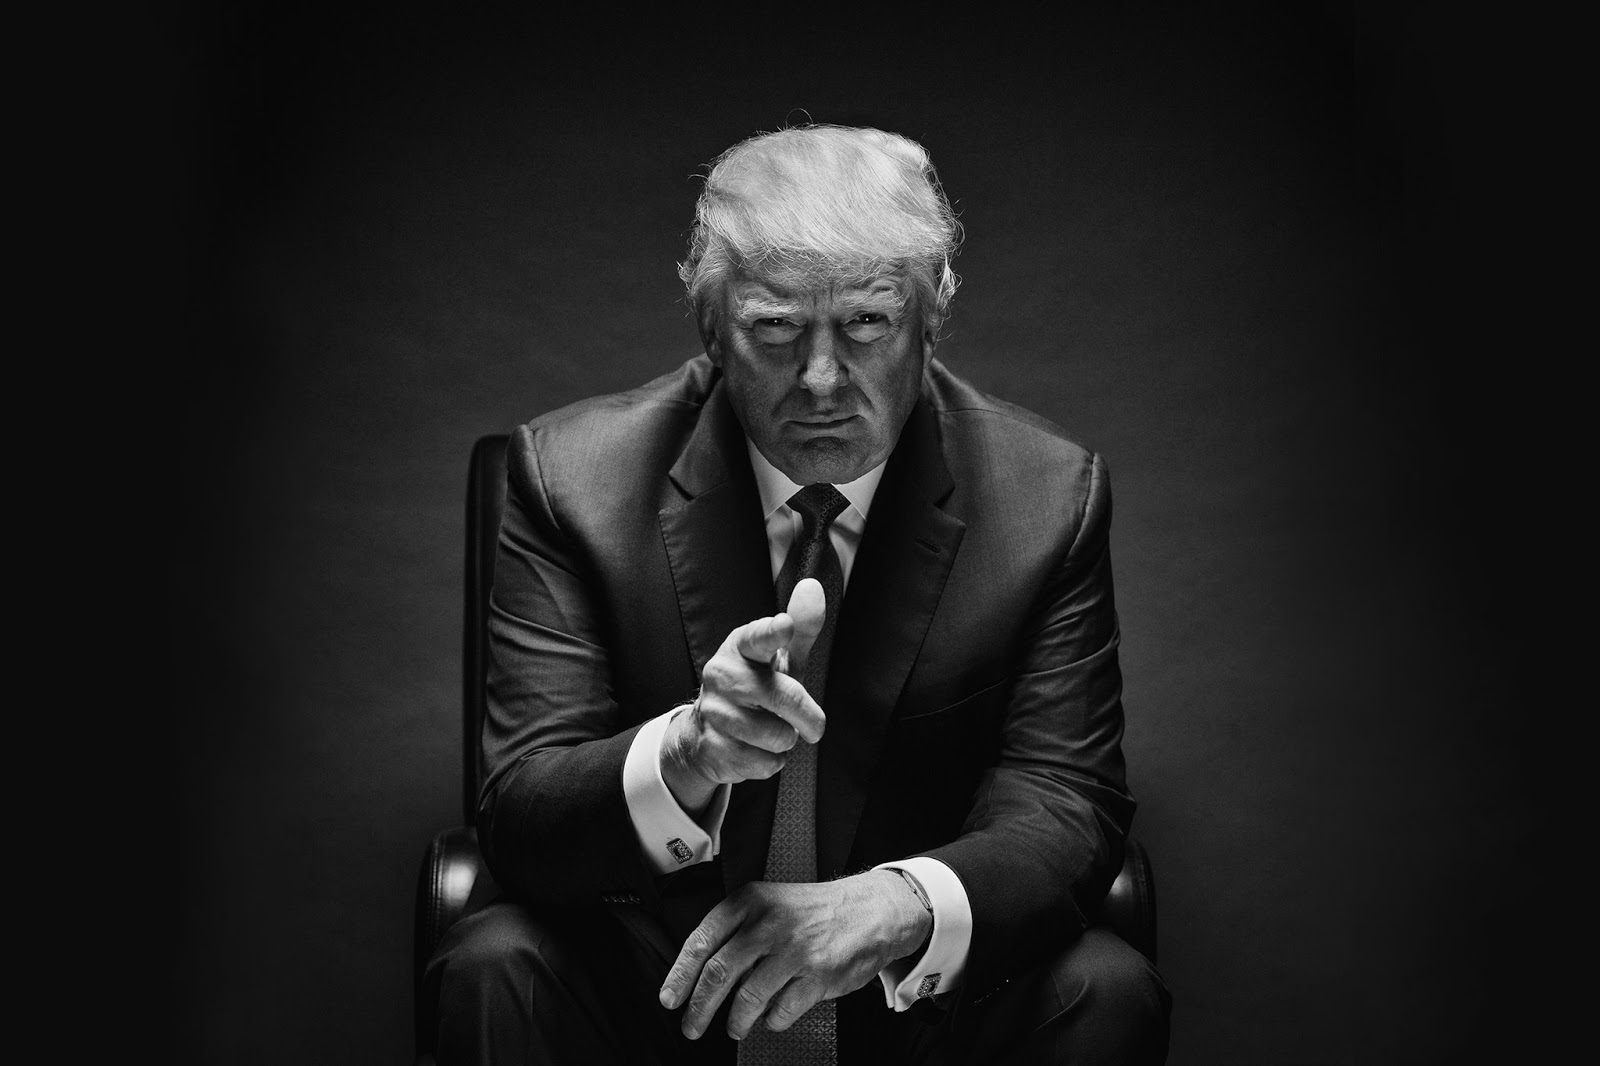 Donald Trump Has Just Become The 45th President Of The United States [Hype] 04trump1 opener superJumbo